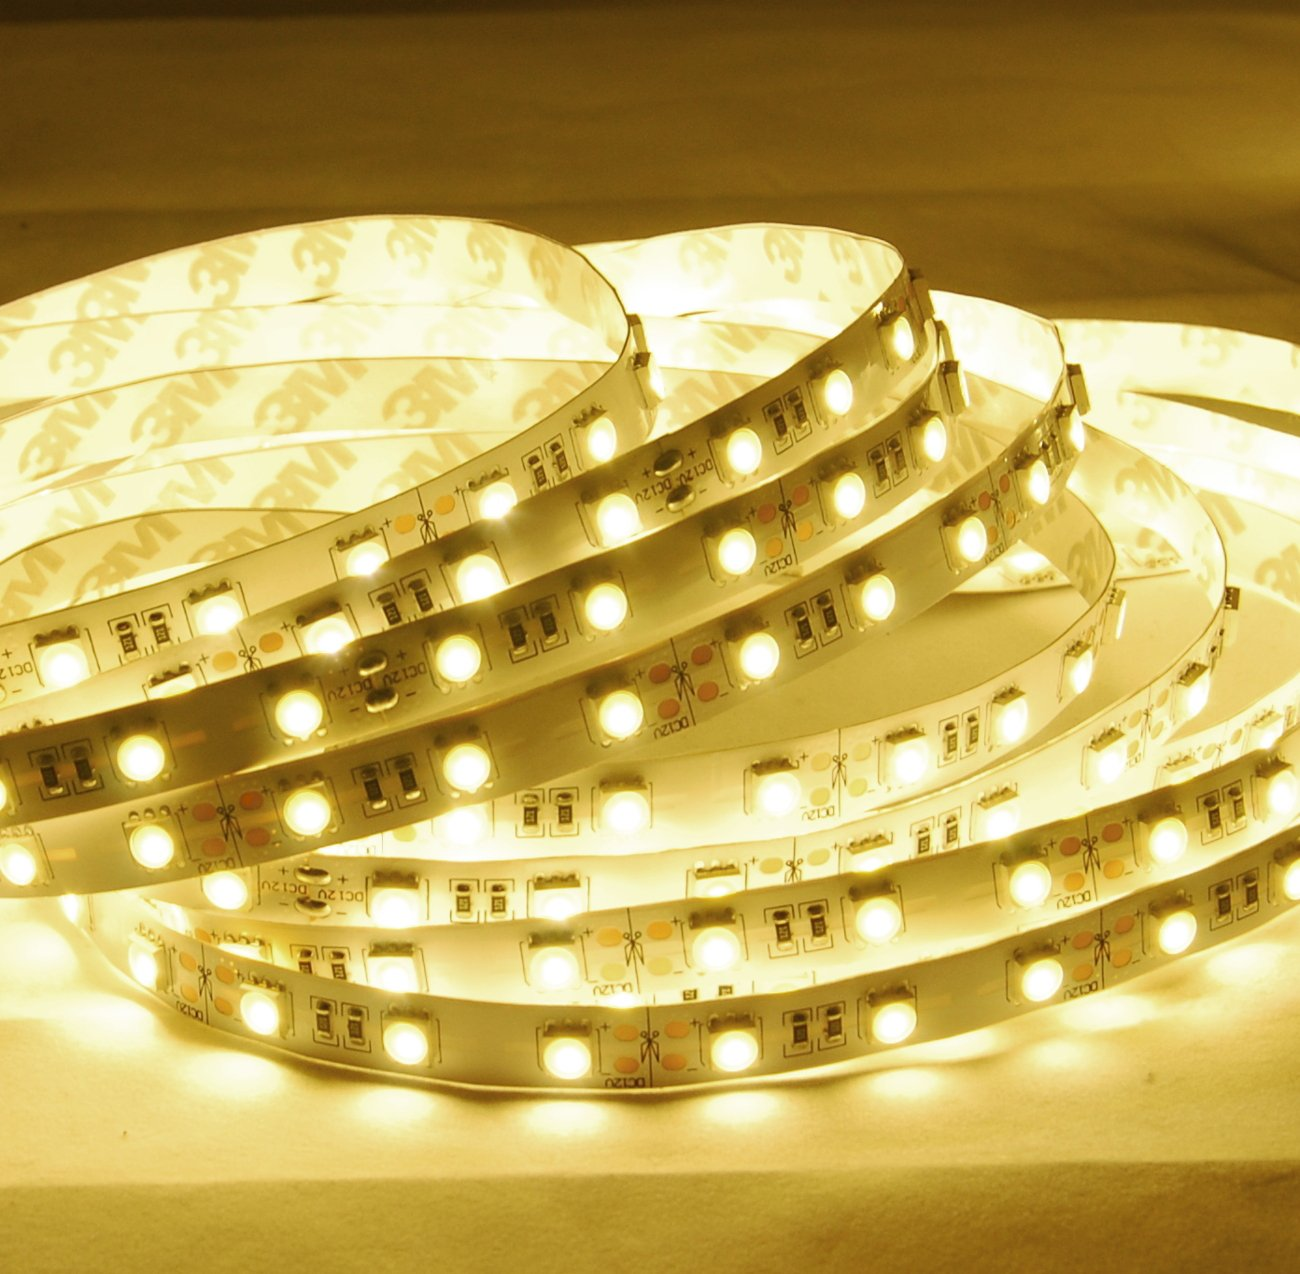 ABI Warm White LED Strip Light, 600 LEDs, 10 Meters / 32.8 Feet, SMD5050, 2800K, 24V DC (Adapter Not Included)